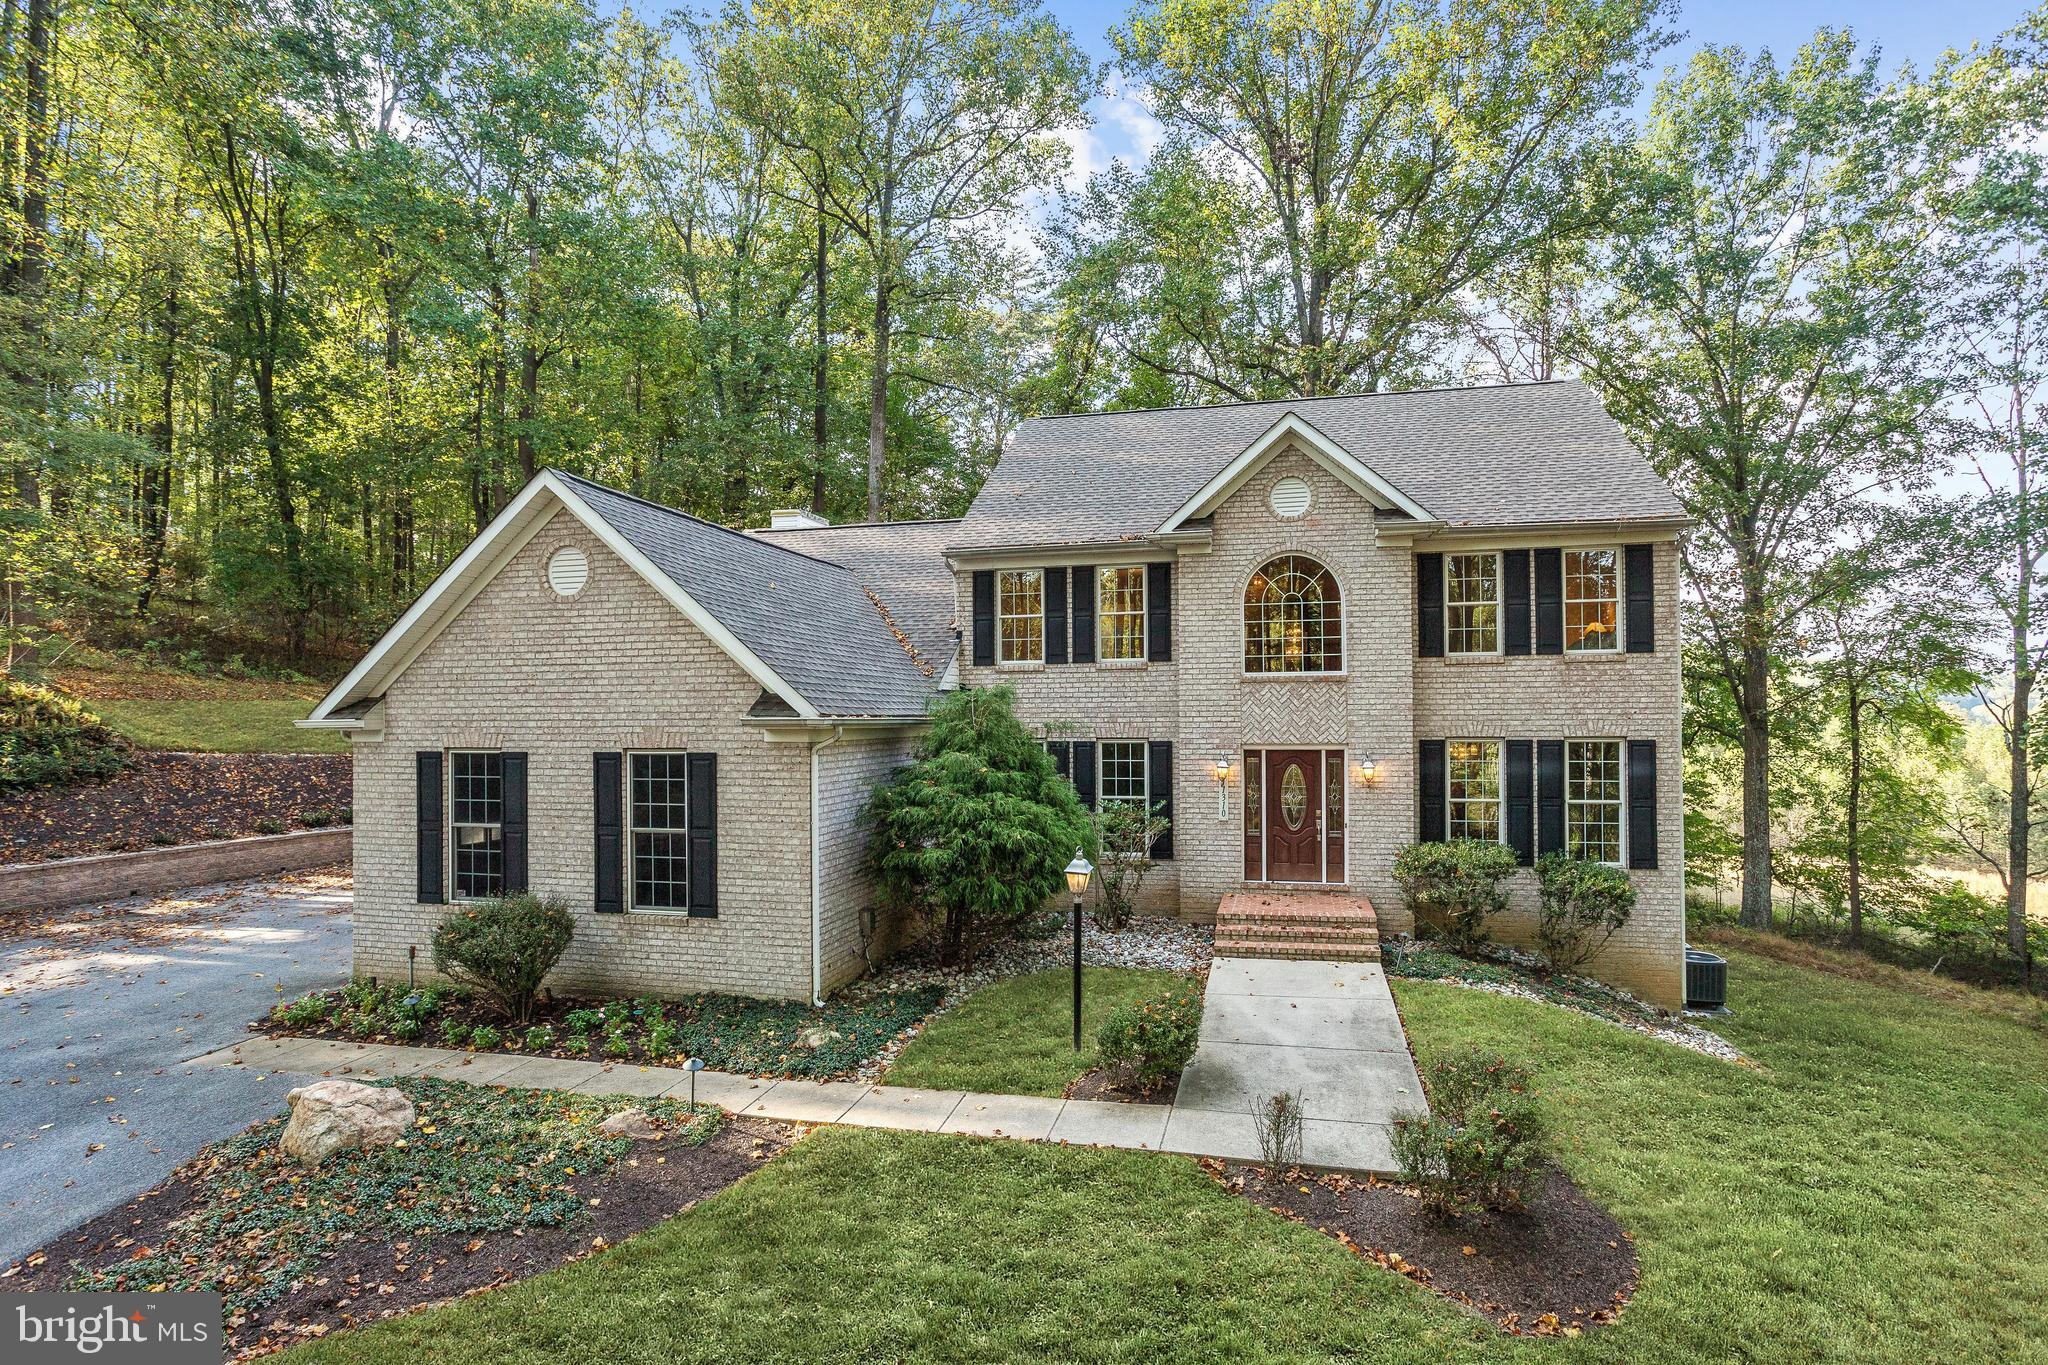 11310 BARLEY FIELD WAY, MARRIOTTSVILLE, MD 21104